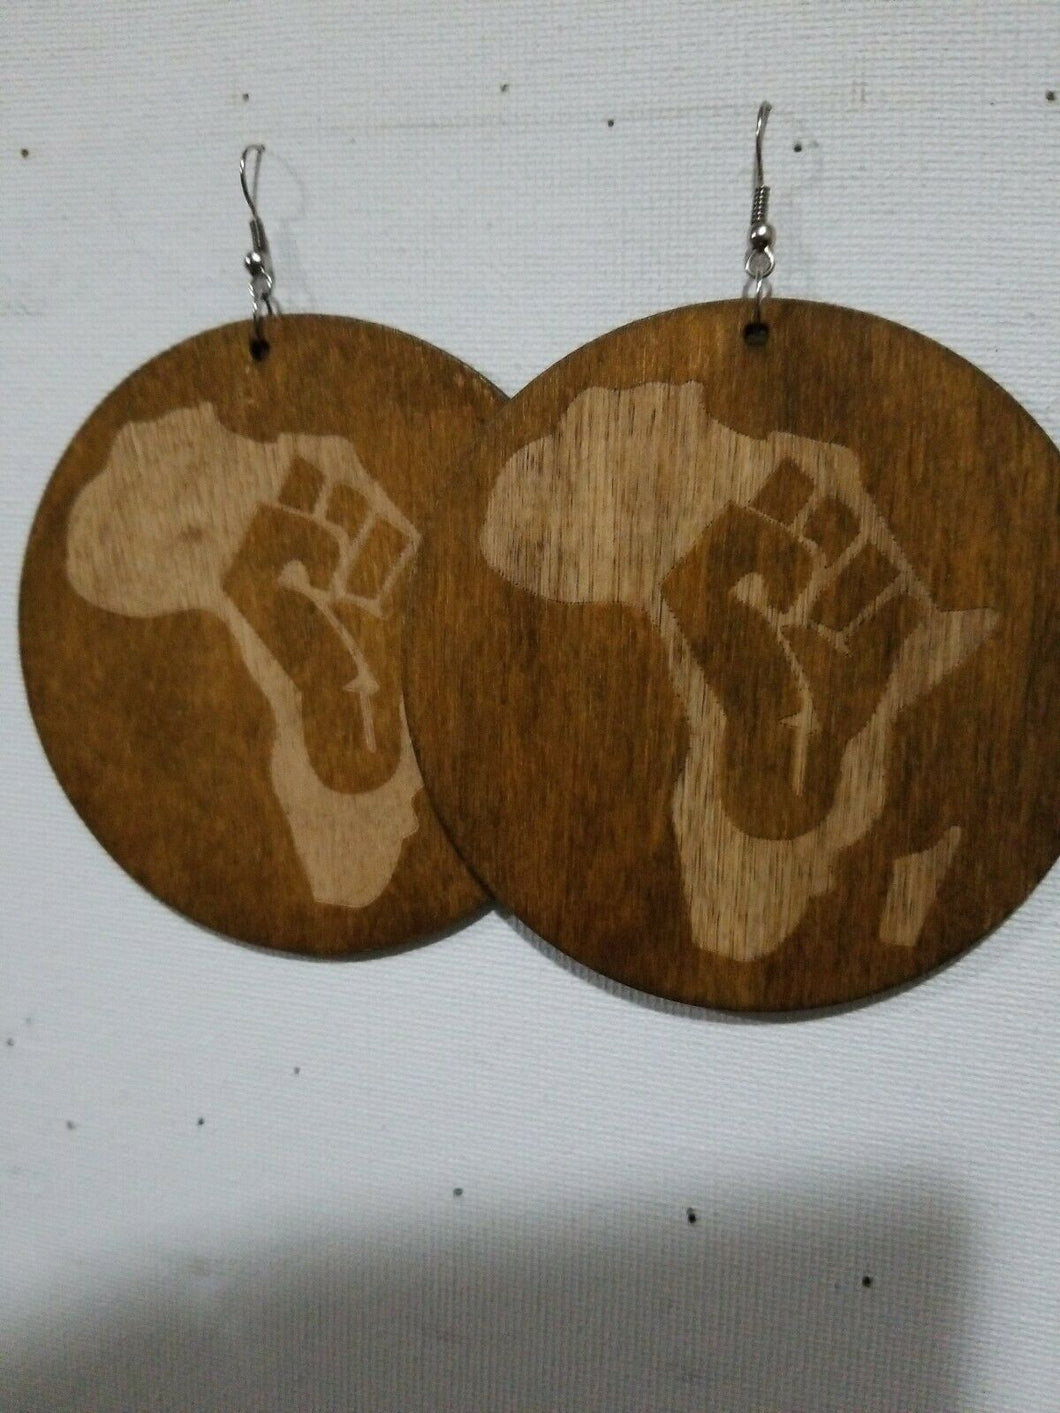 Wooden Large Africa Map and Clinched fist.Light weight errings